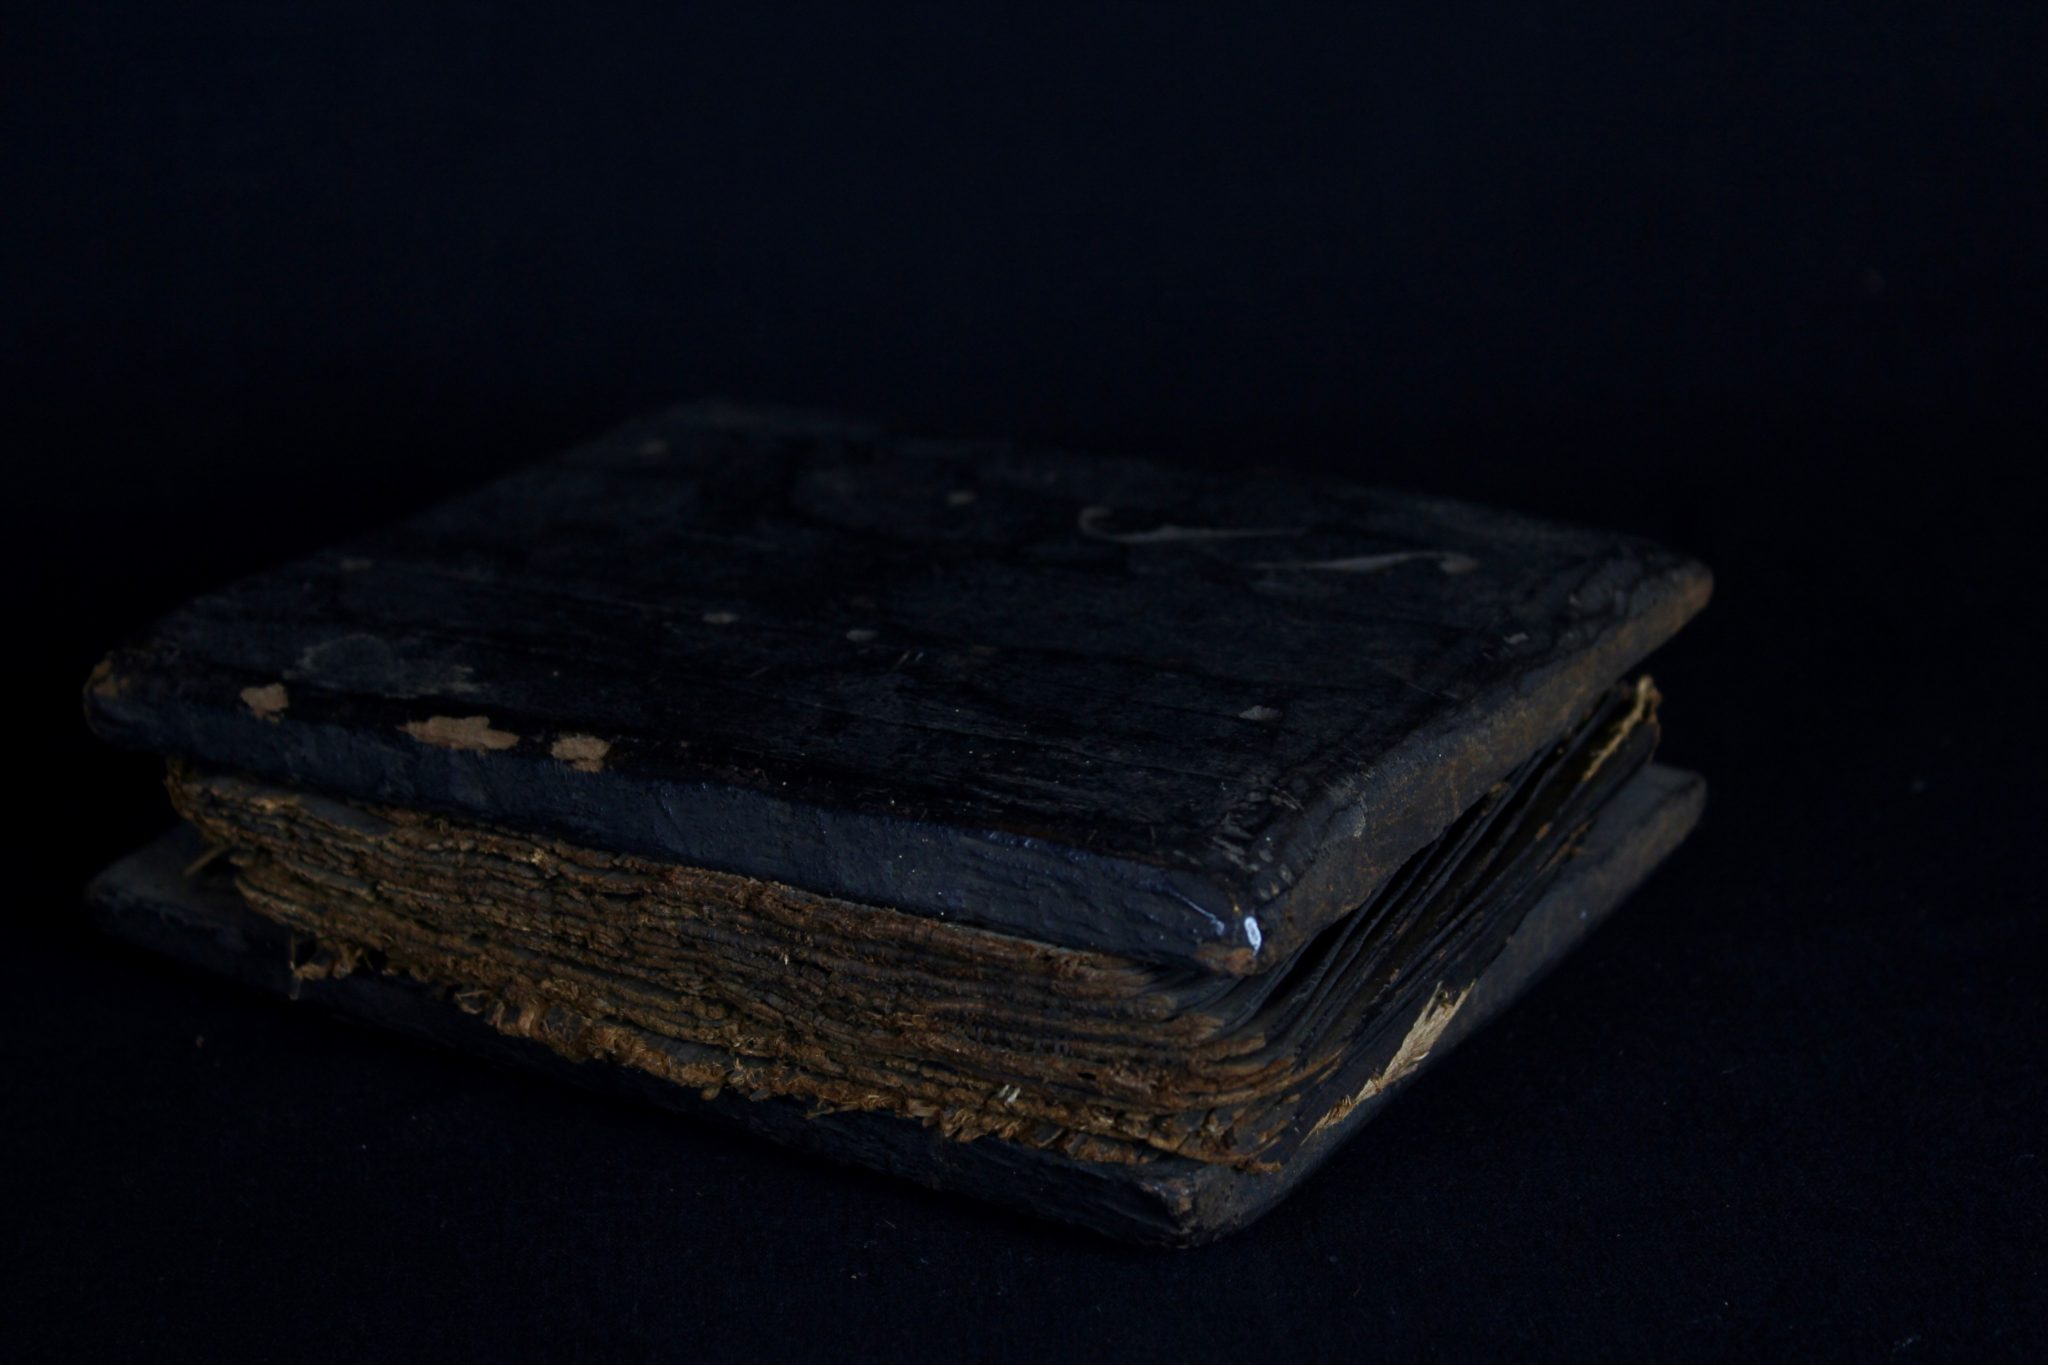 """Shaman's Medicine/Magic Book, Sumatra, Indonesia, Batak tribe, Late 19th to early 20th c, Wood cover, bark pages. The book unfolds like an accordion It contains the shaman's magic formulas (tabas), oracles, recipes for medicines and instructions for performing rituals and for producing magic cures. It contains three main divisions of knowledge: the art of preserving life; the art of destroying life and the art of fortune telling. 8"""" x 6 ½"""" x 2 ½"""",$3200."""